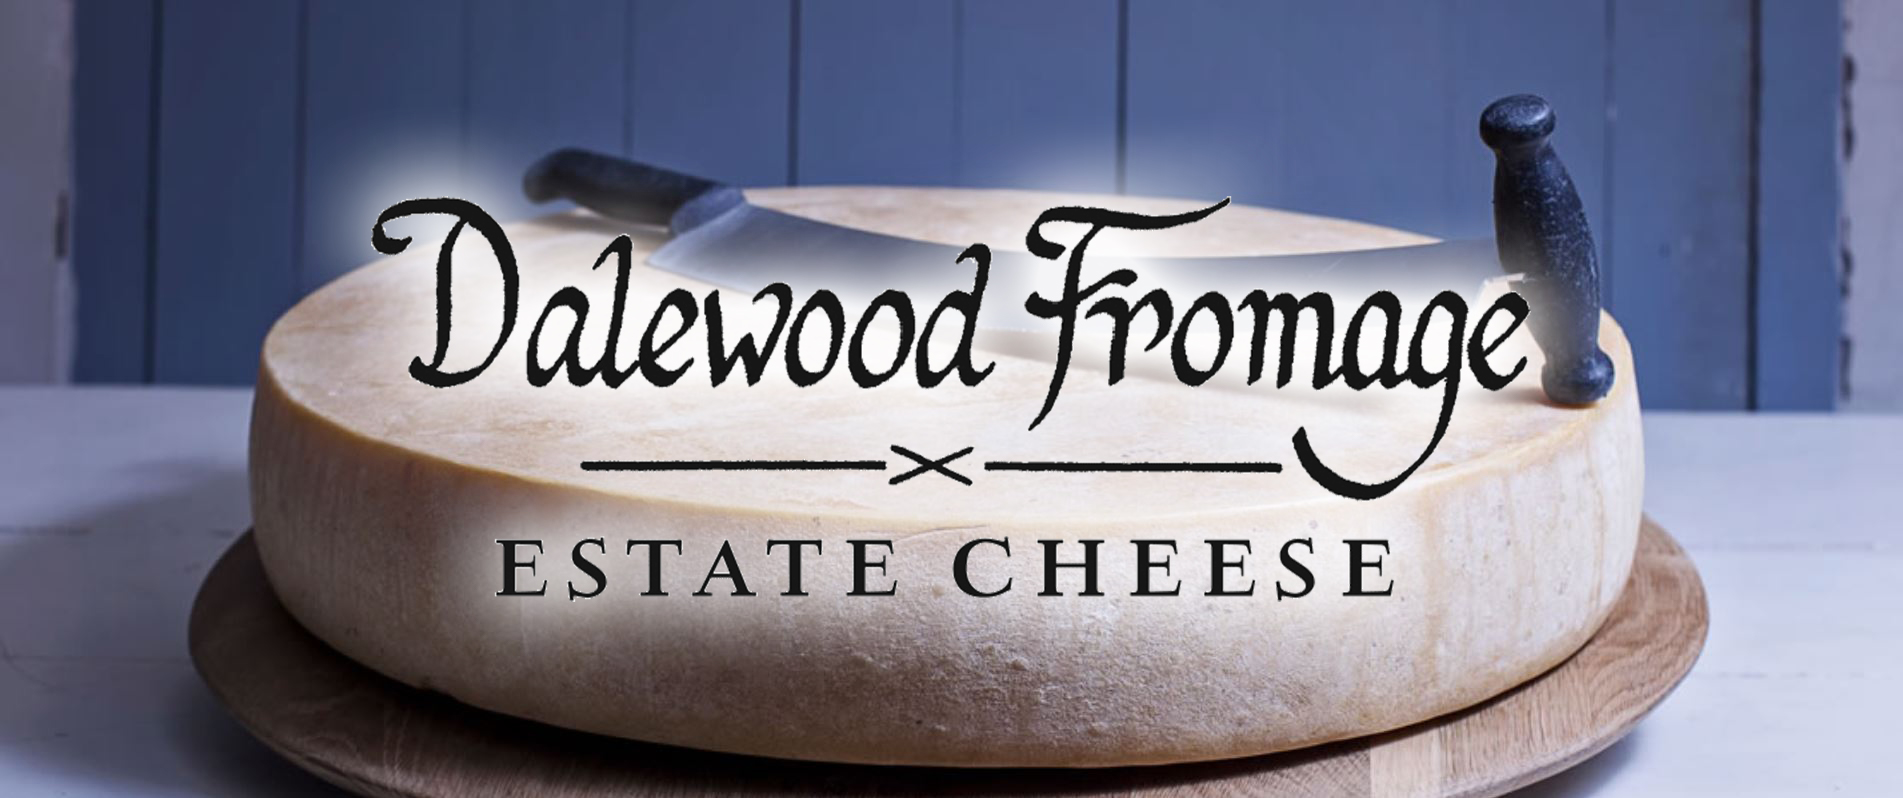 Dalewood Cheese banner